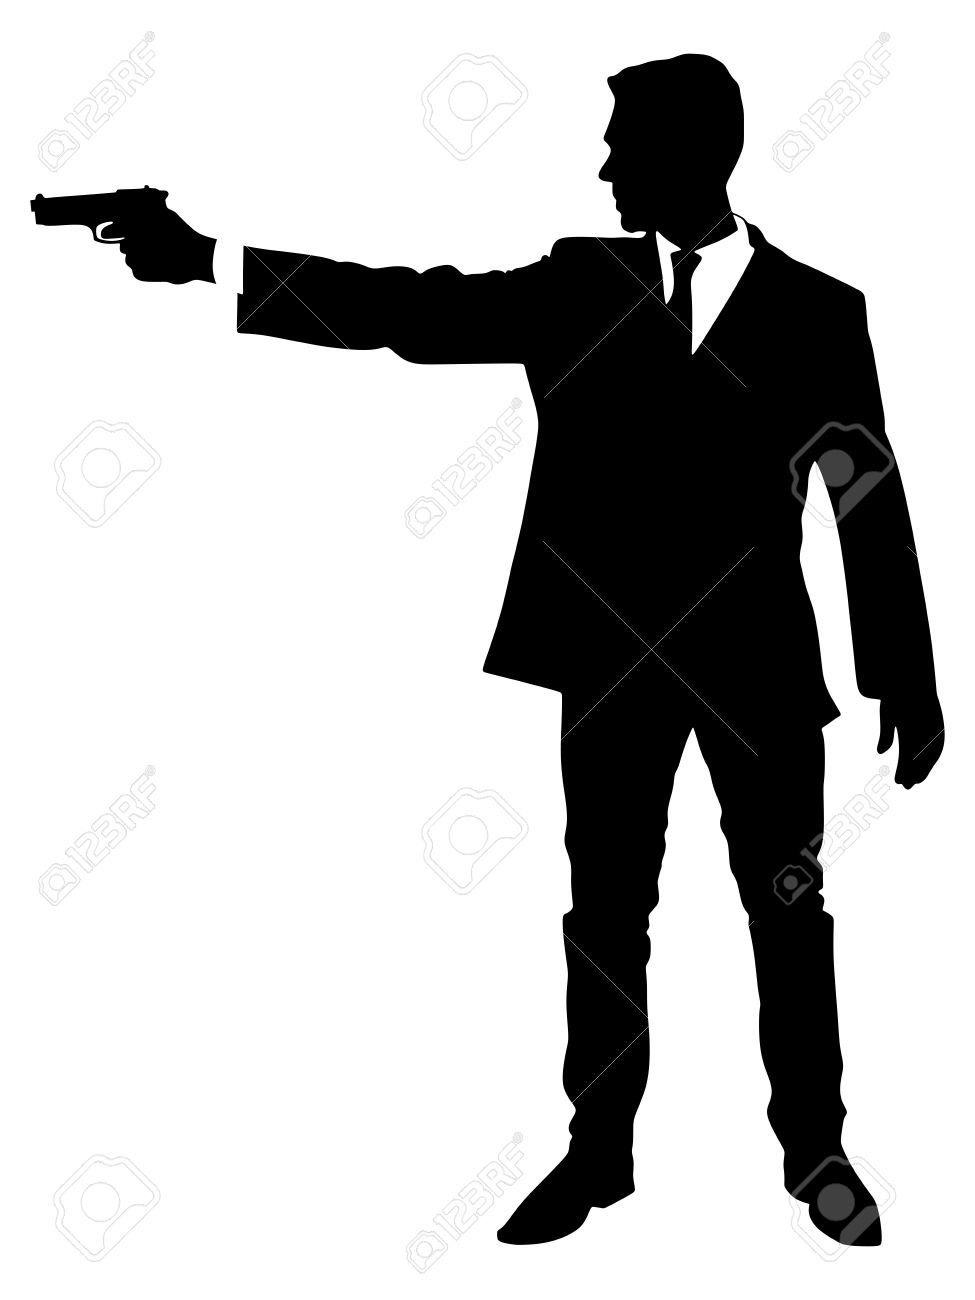 Man Shooting Gun Clipart.